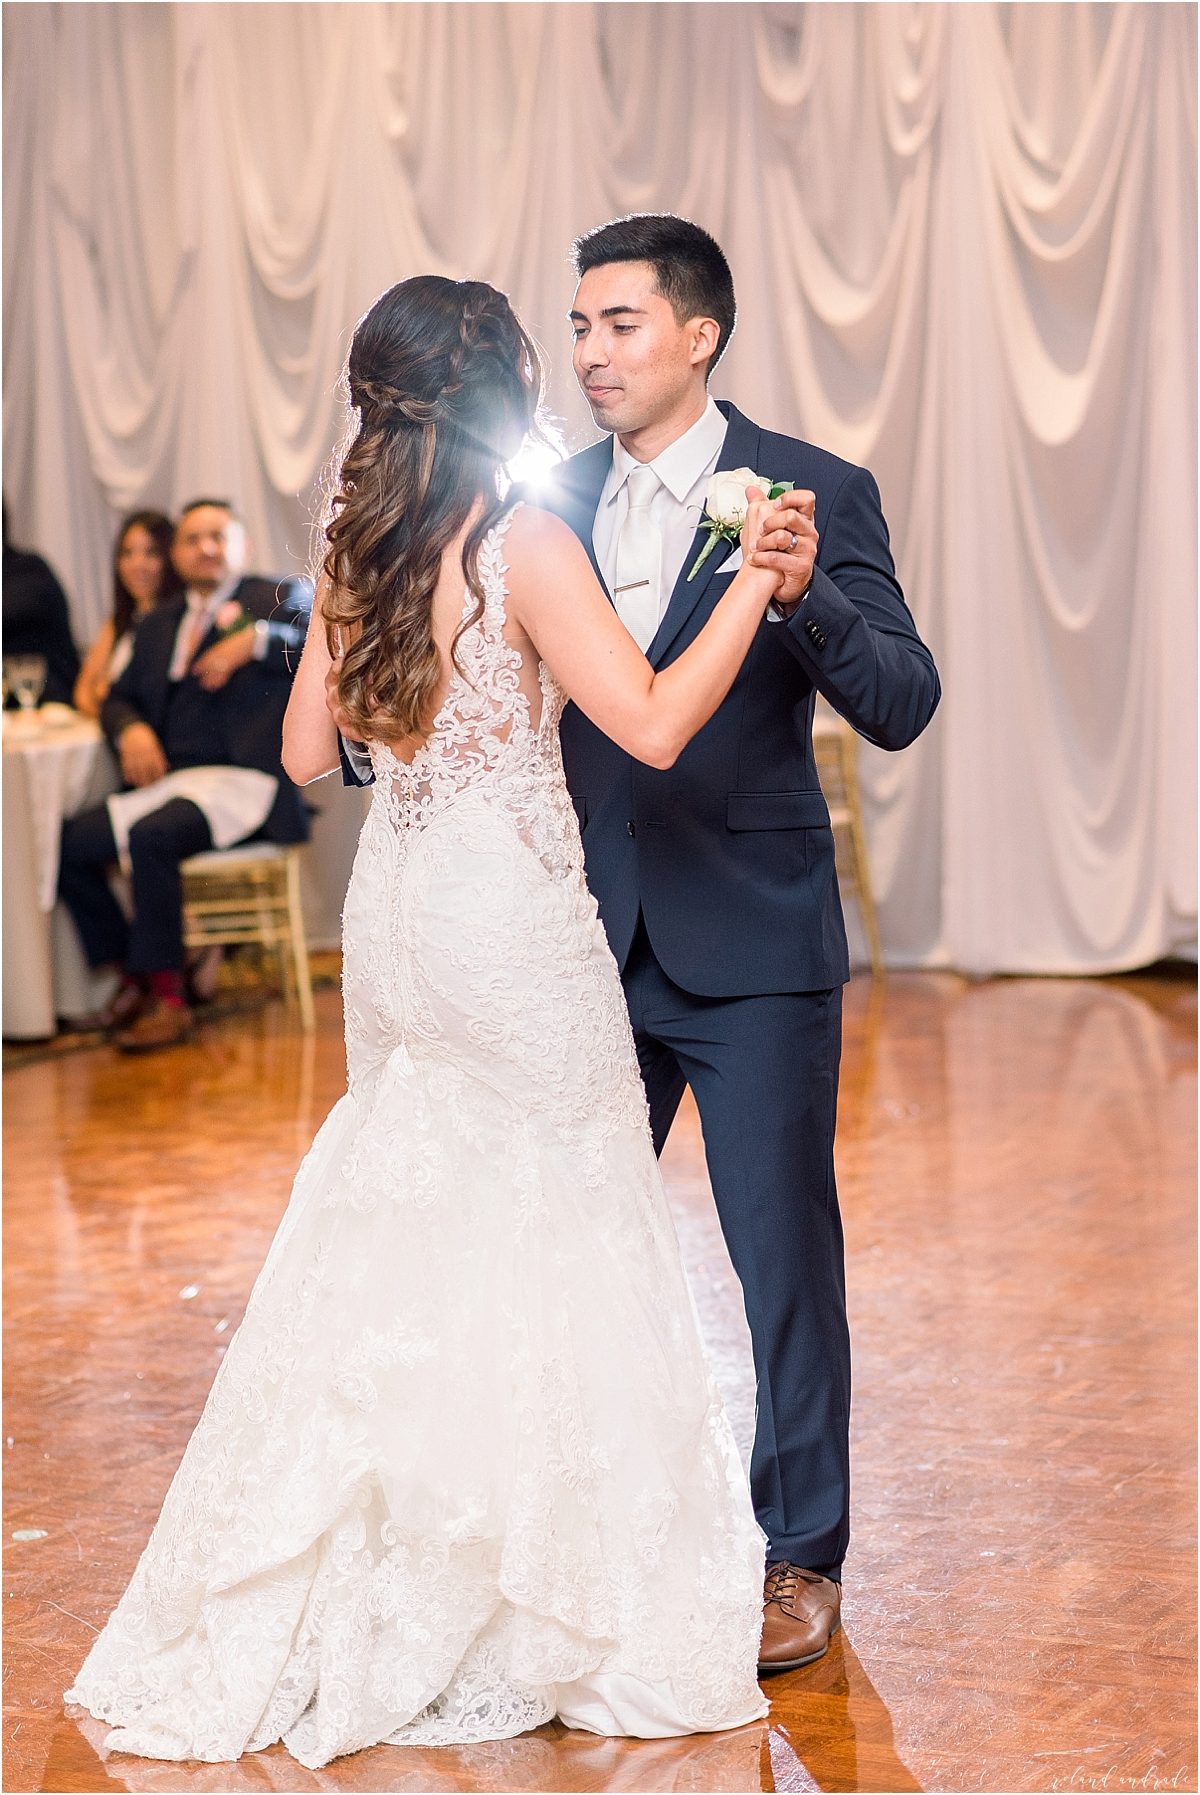 Tuscany Falls Wedding + Light and Airy Wedding Photographer Chicago, Mokena Wedding Photographer + Chicago Latino Photography + Naperville Wedding Photographer + Chicago Engagement Photographer + Best Photographer In Chicago_0070.jpg